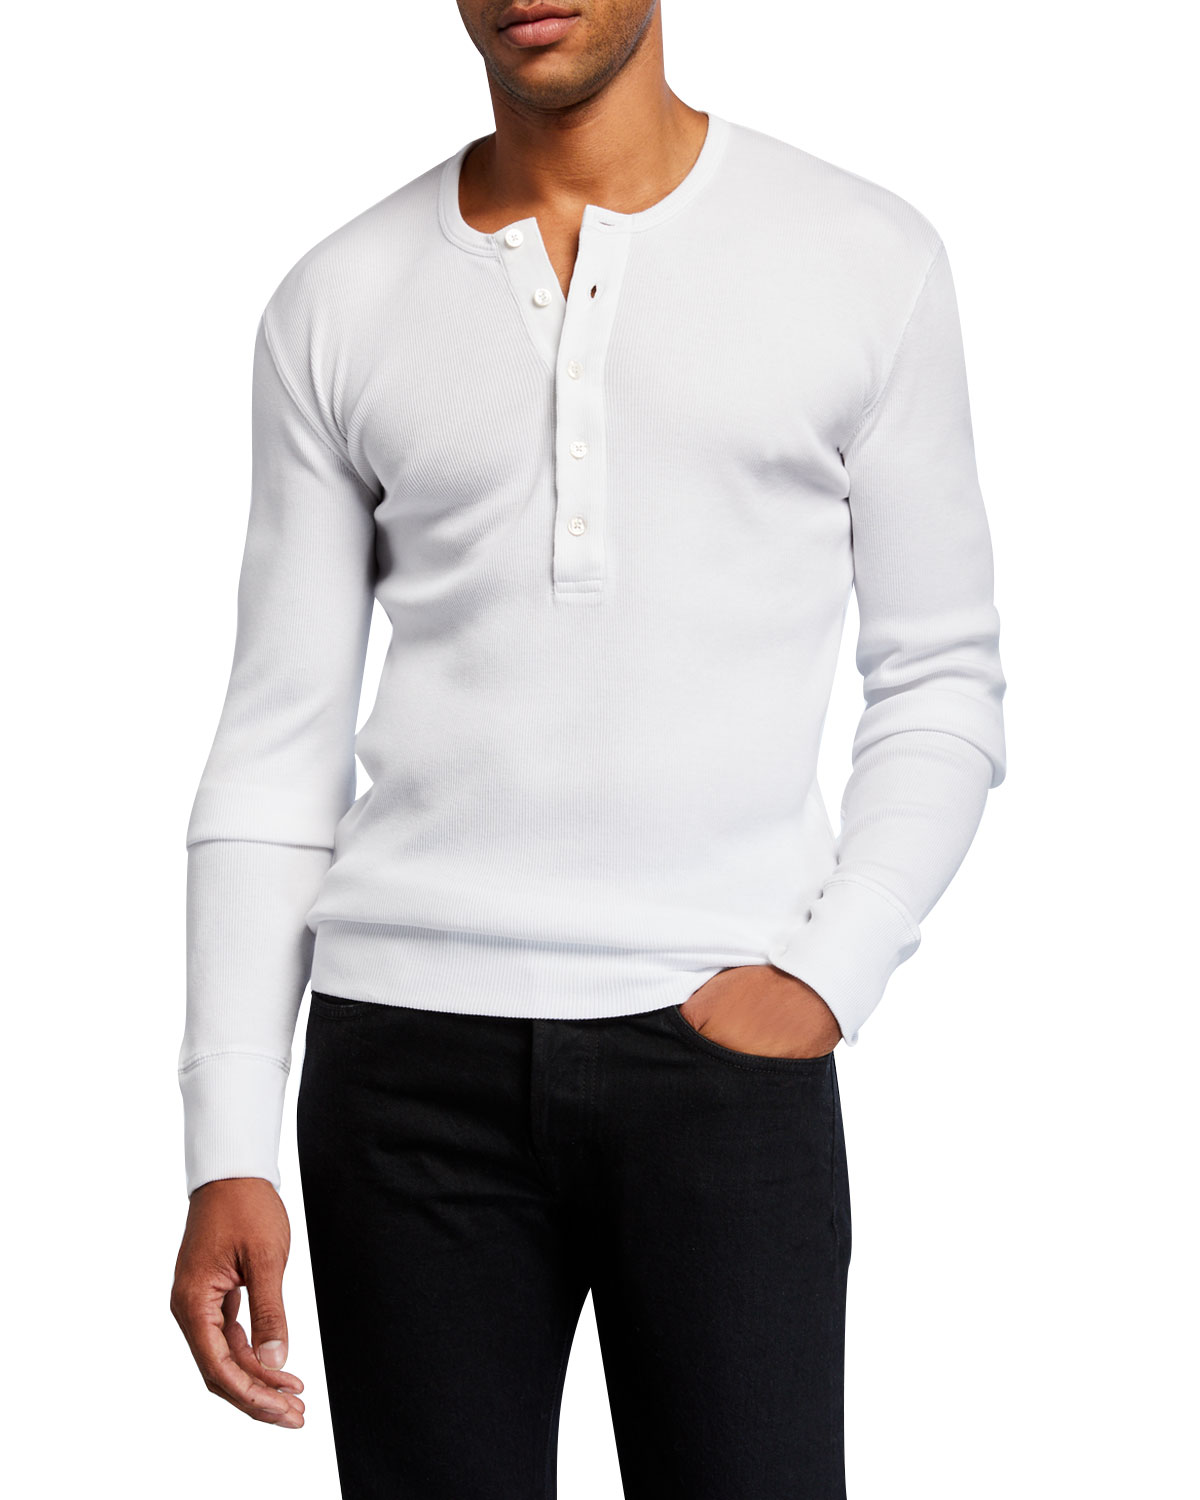 Men's Solid Cotton Henley Shirt by Tom Ford